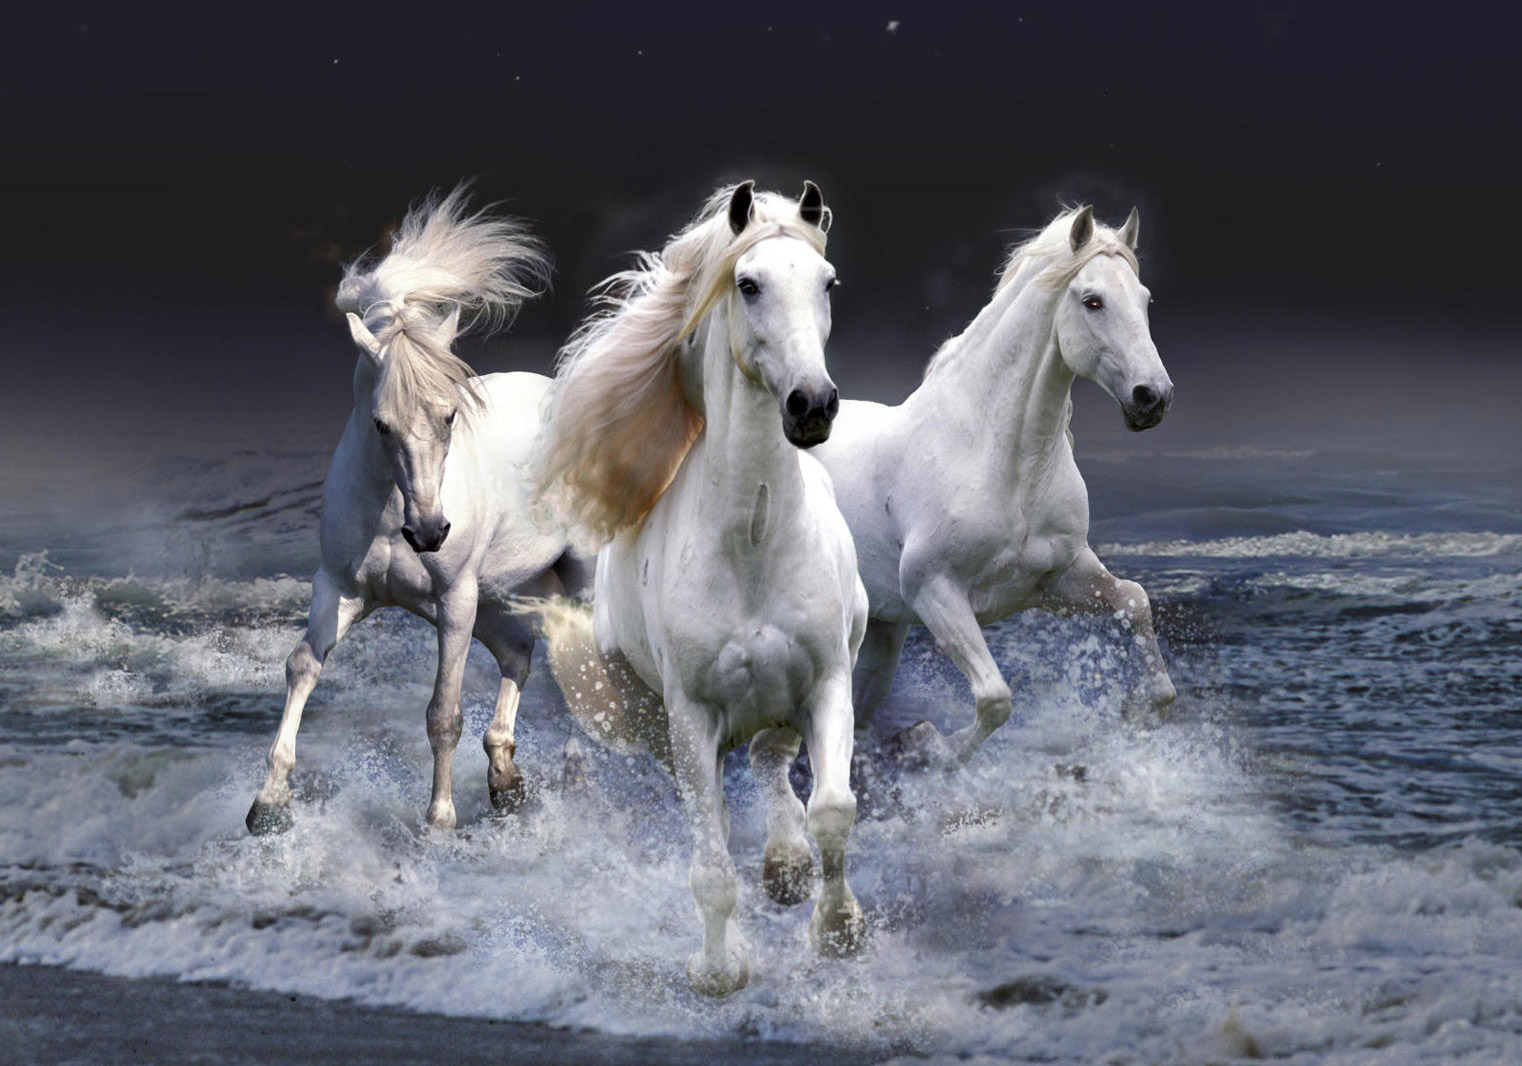 http://www.coreldesign.com/blog/wp-content/uploads/2012/01/wallpaper_Horse.jpg